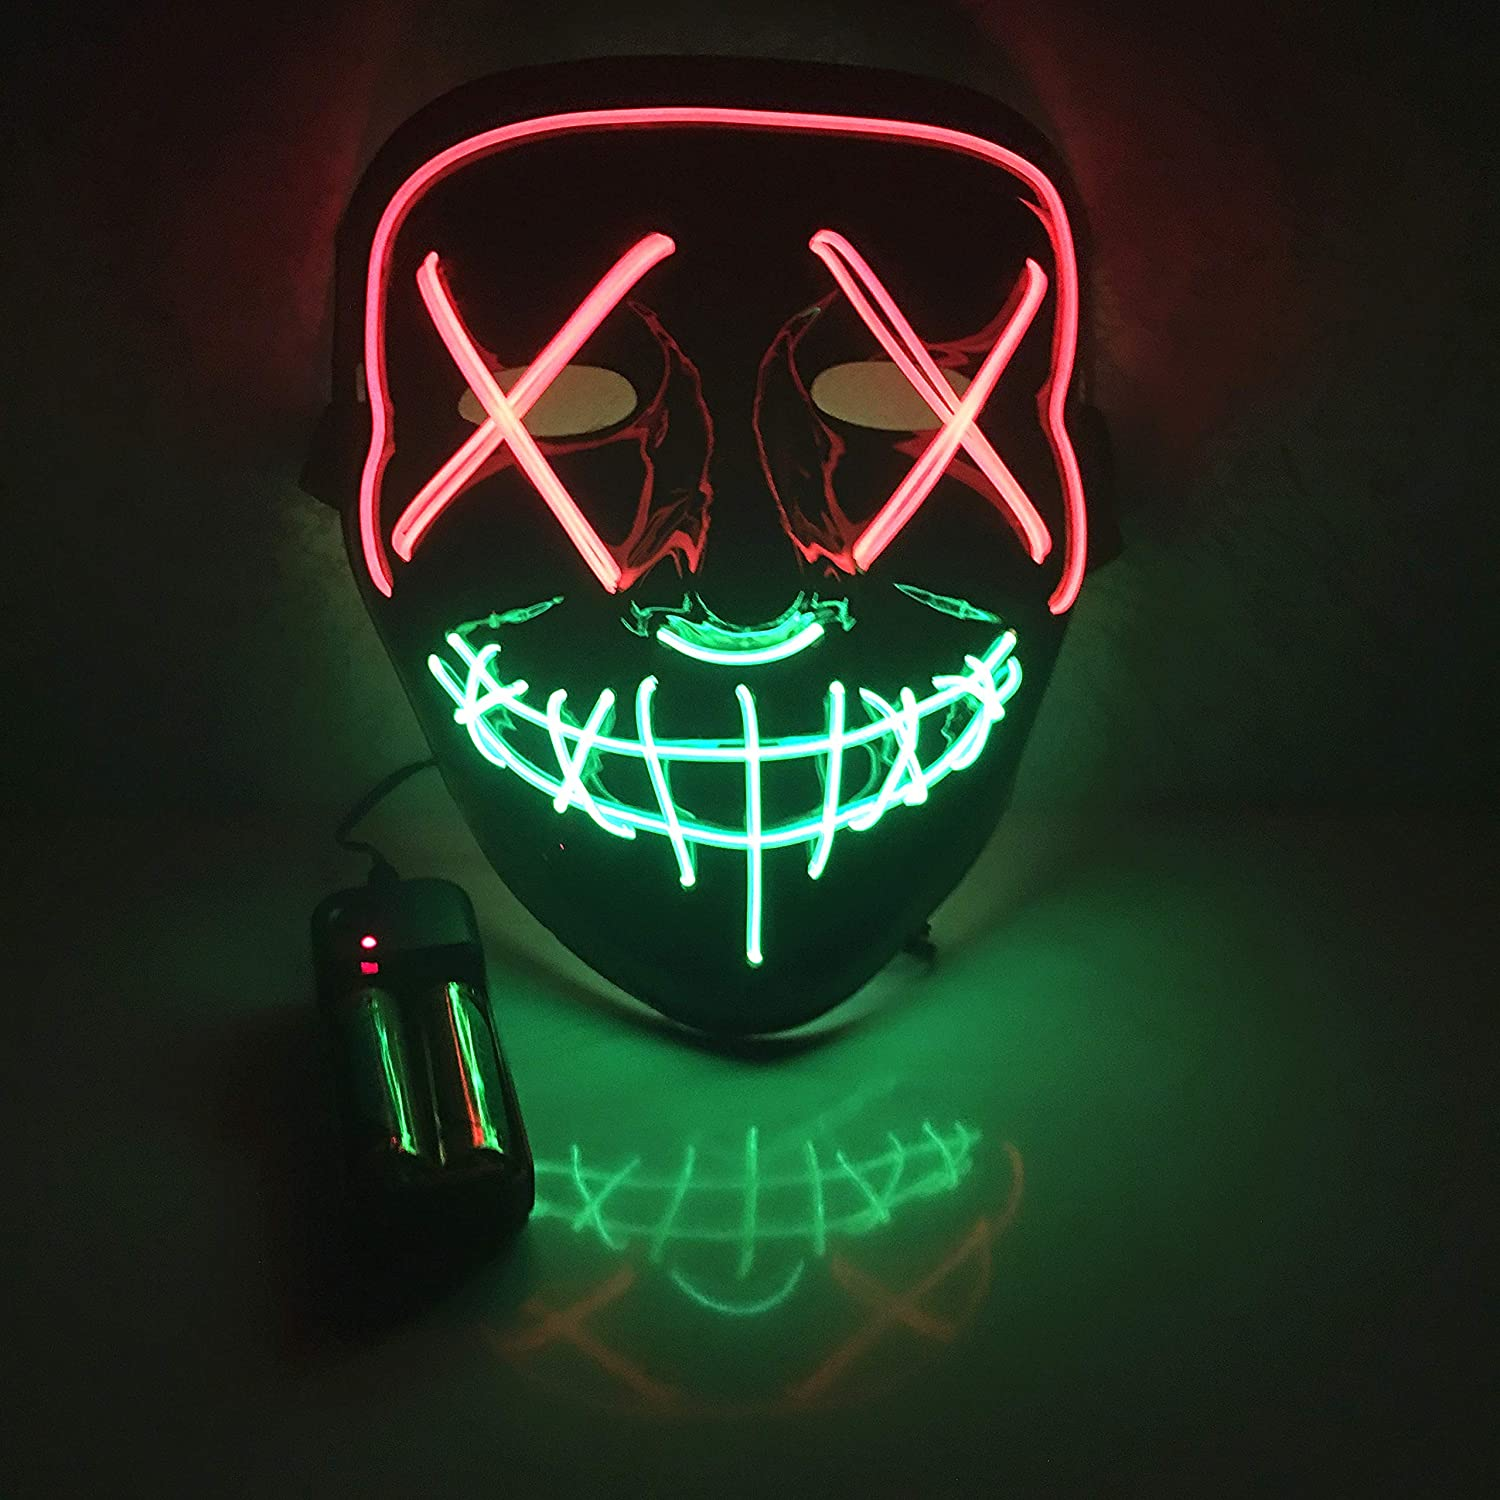 Moonideal Halloween Light Up Mask EL Wire Scary Mask for Halloween Festival Party Sound Induction Twinkling with Music Speed